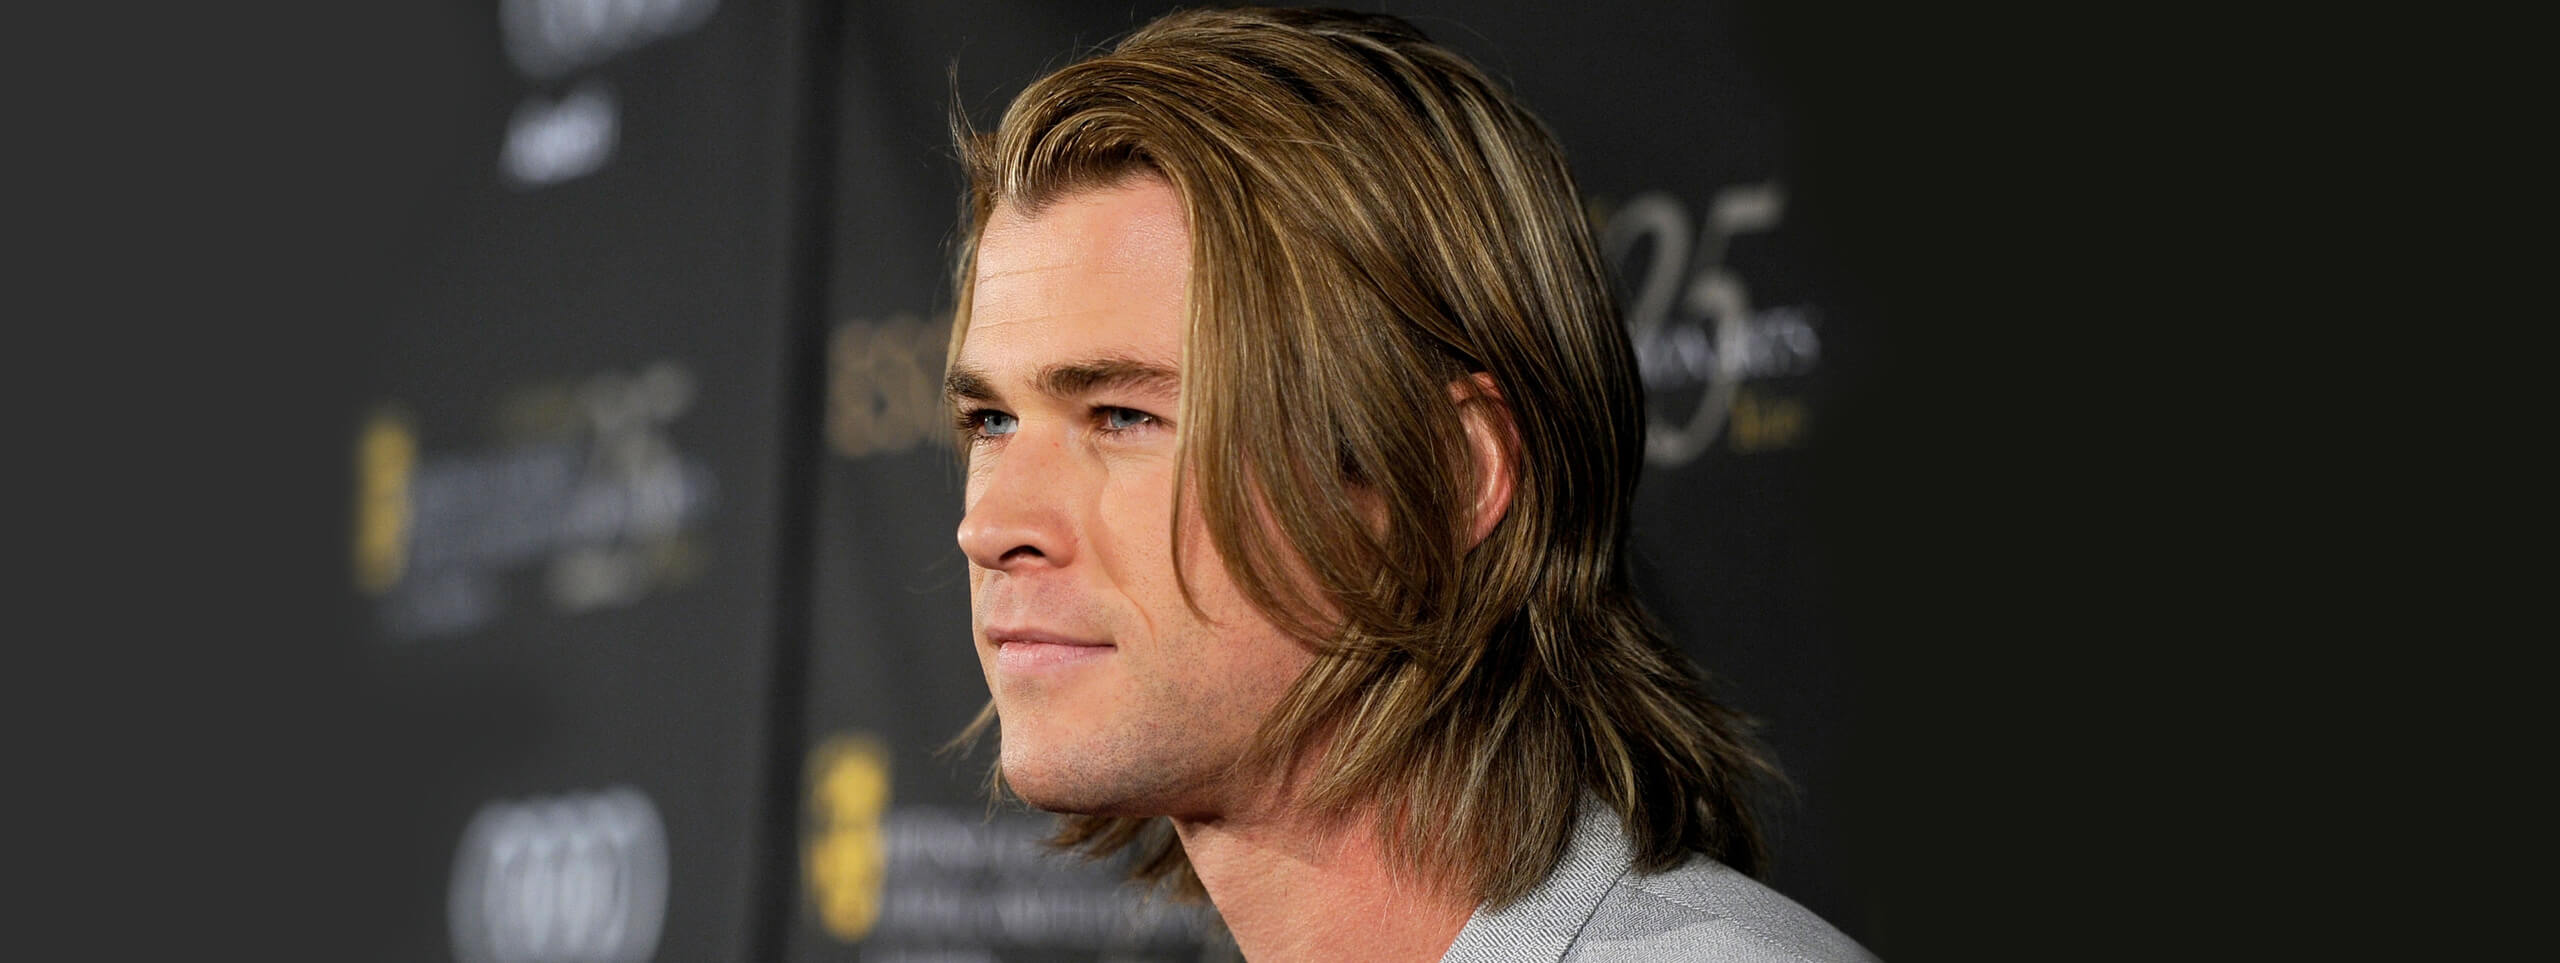 men-with-long-hair